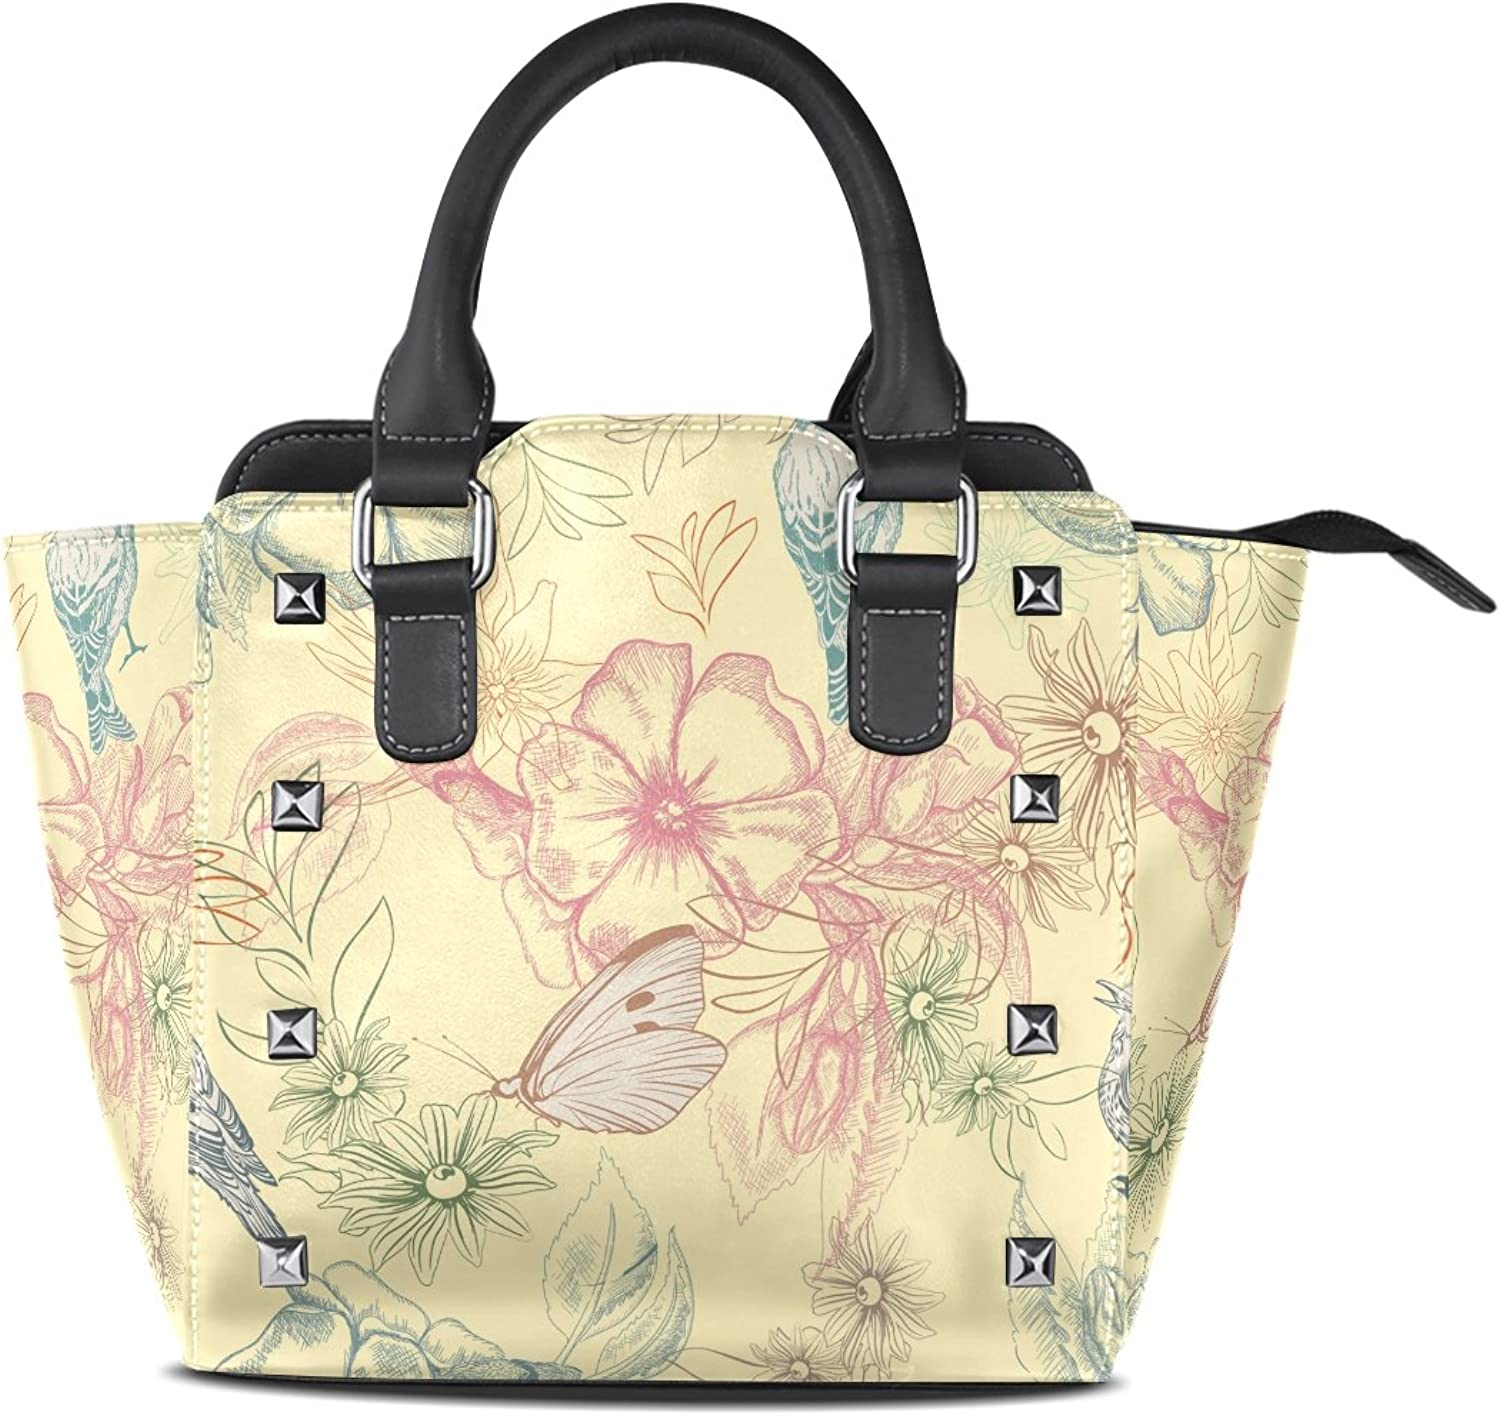 Sunlome Spring Butterflies and Birds On Apple Flowers Print Handbags Women's PU Leather Top-Handle Shoulder Bags